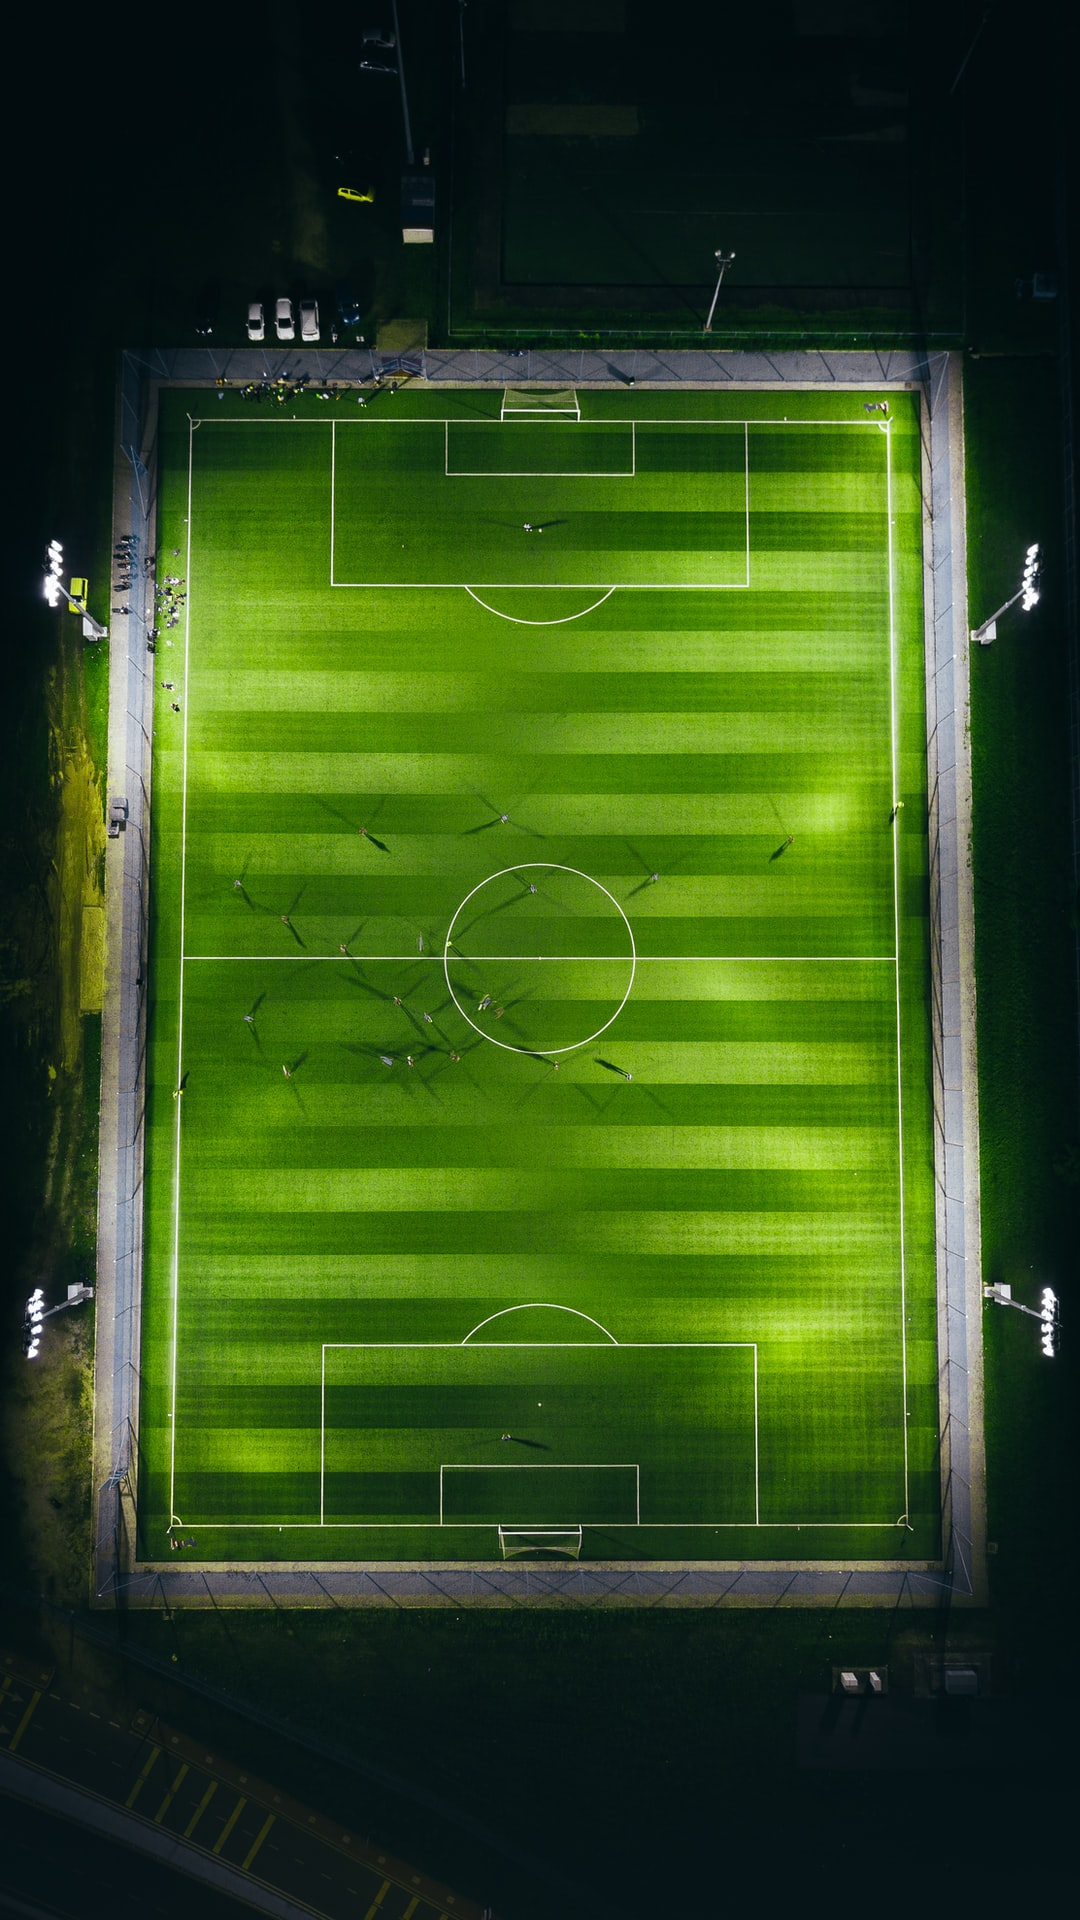 Soccer Wallpapers HD Download [500 HQ] Unsplash 1080x1920